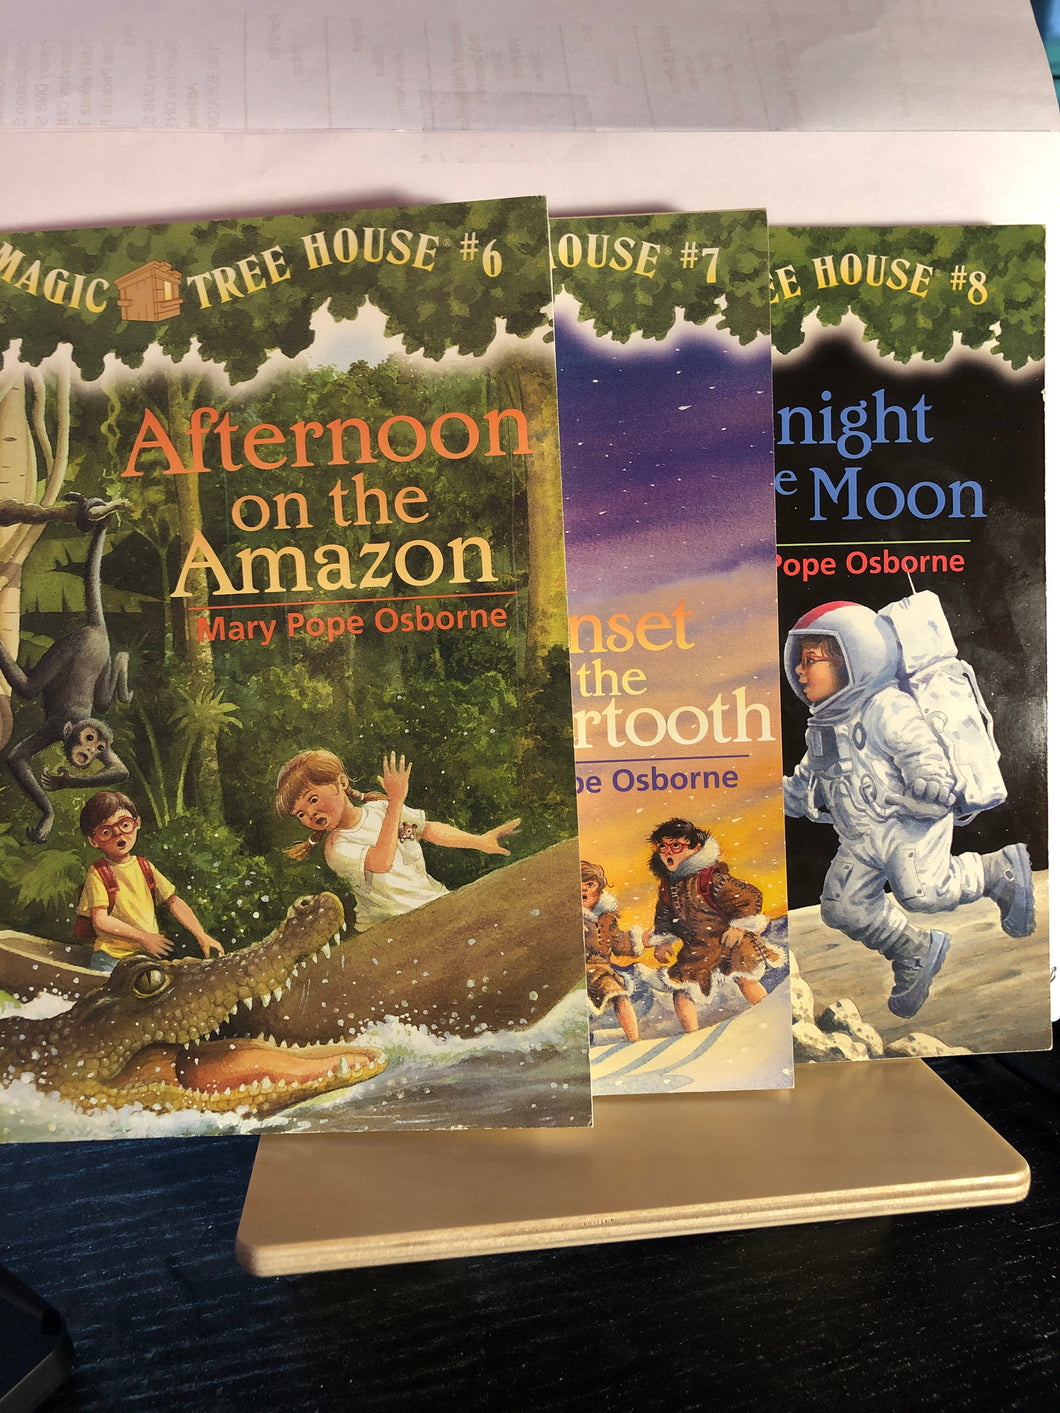 Magic Tree House Bundle  by Mary Pope Osborne  #6-8  (item:107)